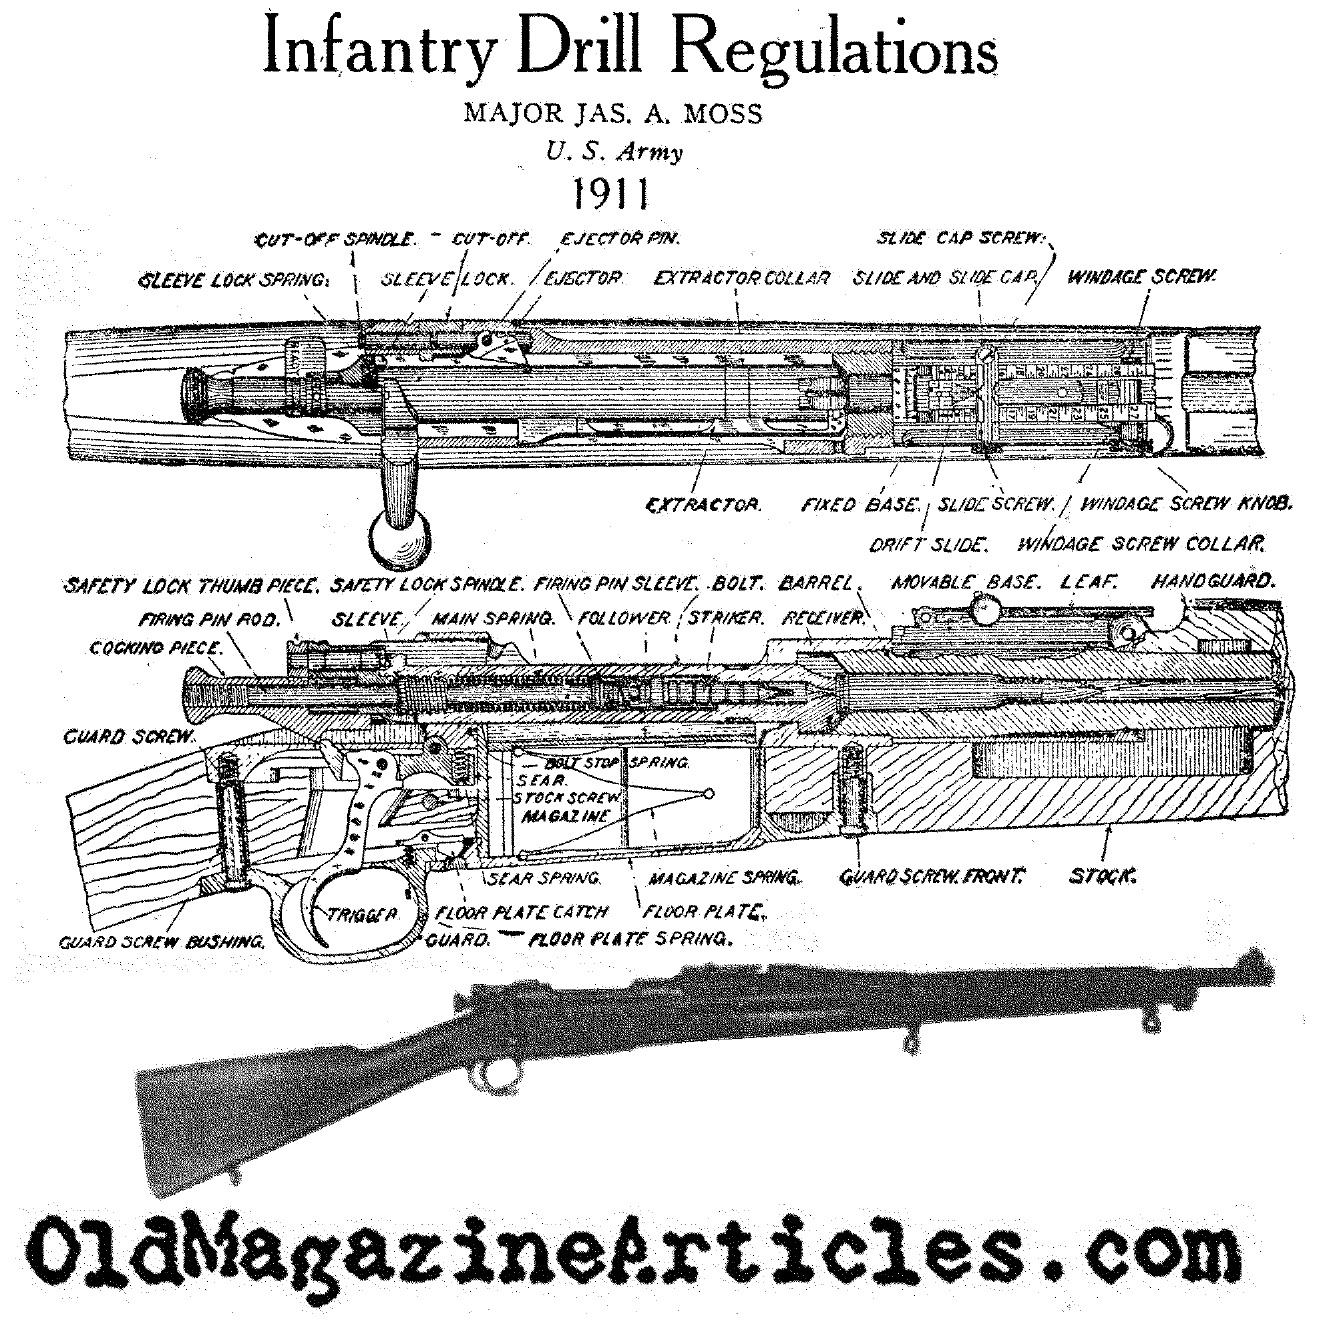 The American Sniper Rifle (U.S. Infantry Drill Manual, 1911)